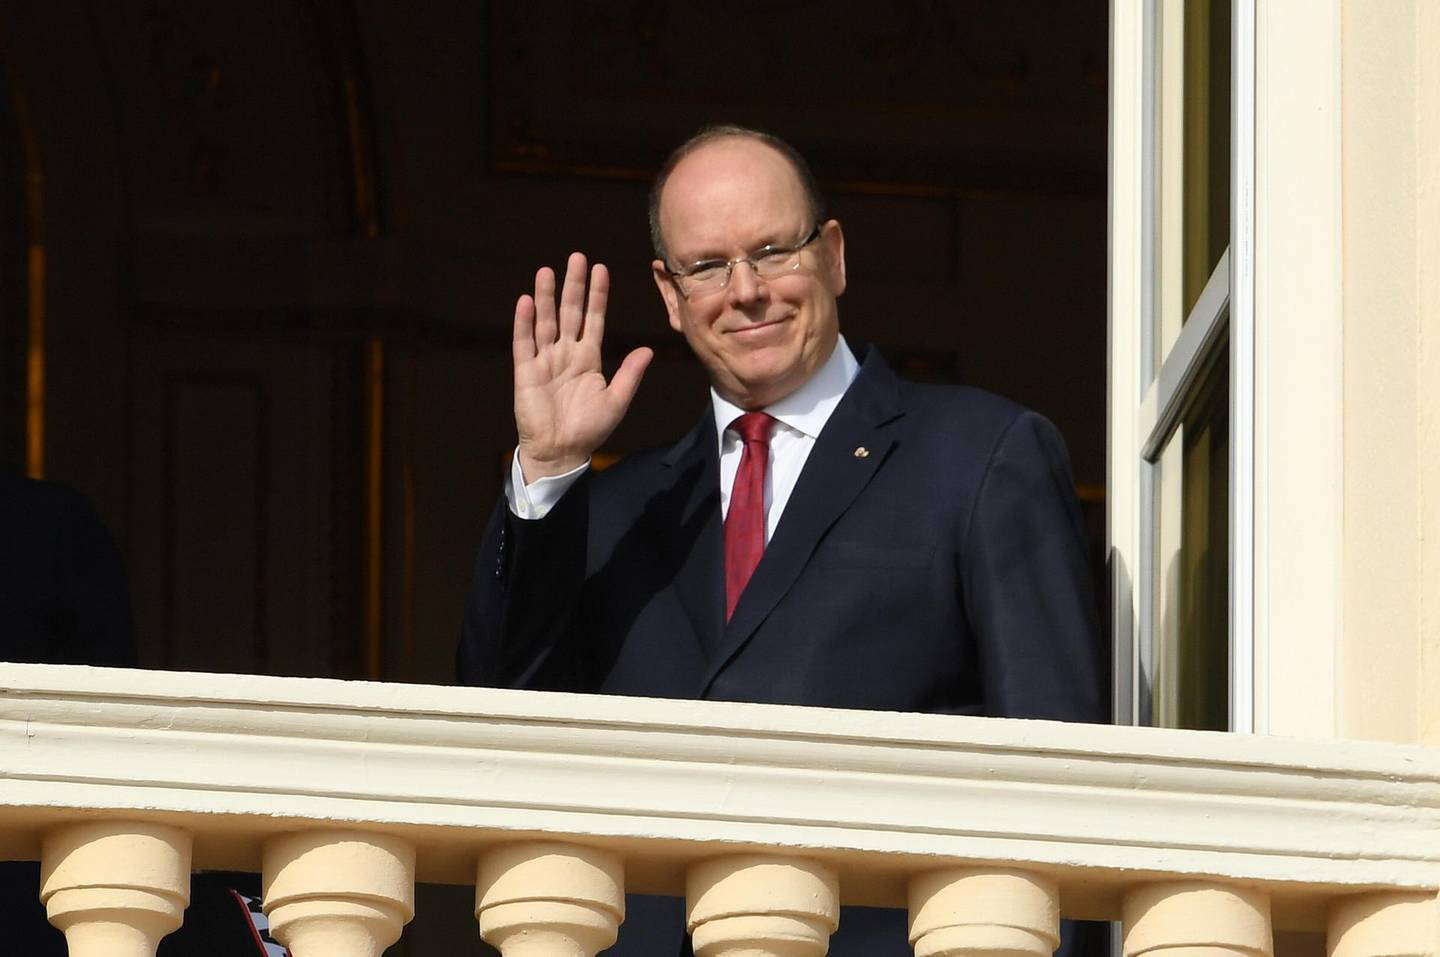 FILE: 19 MARCH, 2020: Prince Albert of Monaco has tested positive for coronavirus (COVID-19) on March 19, 2020 in Monte Carlo, Monaco. MONACO, MONACO - JANUARY 27: Prince Albert II of Monaco greets the crowd from the palace balcony during the Sainte Devote Ceremony. Sainte devote is the patron saint of The Principality Of Monaco and France's Mediterranean Corsica island. on January 27, 2020 in Monaco, Monaco. (Photo by Pascal Le Segretain/Getty Images)